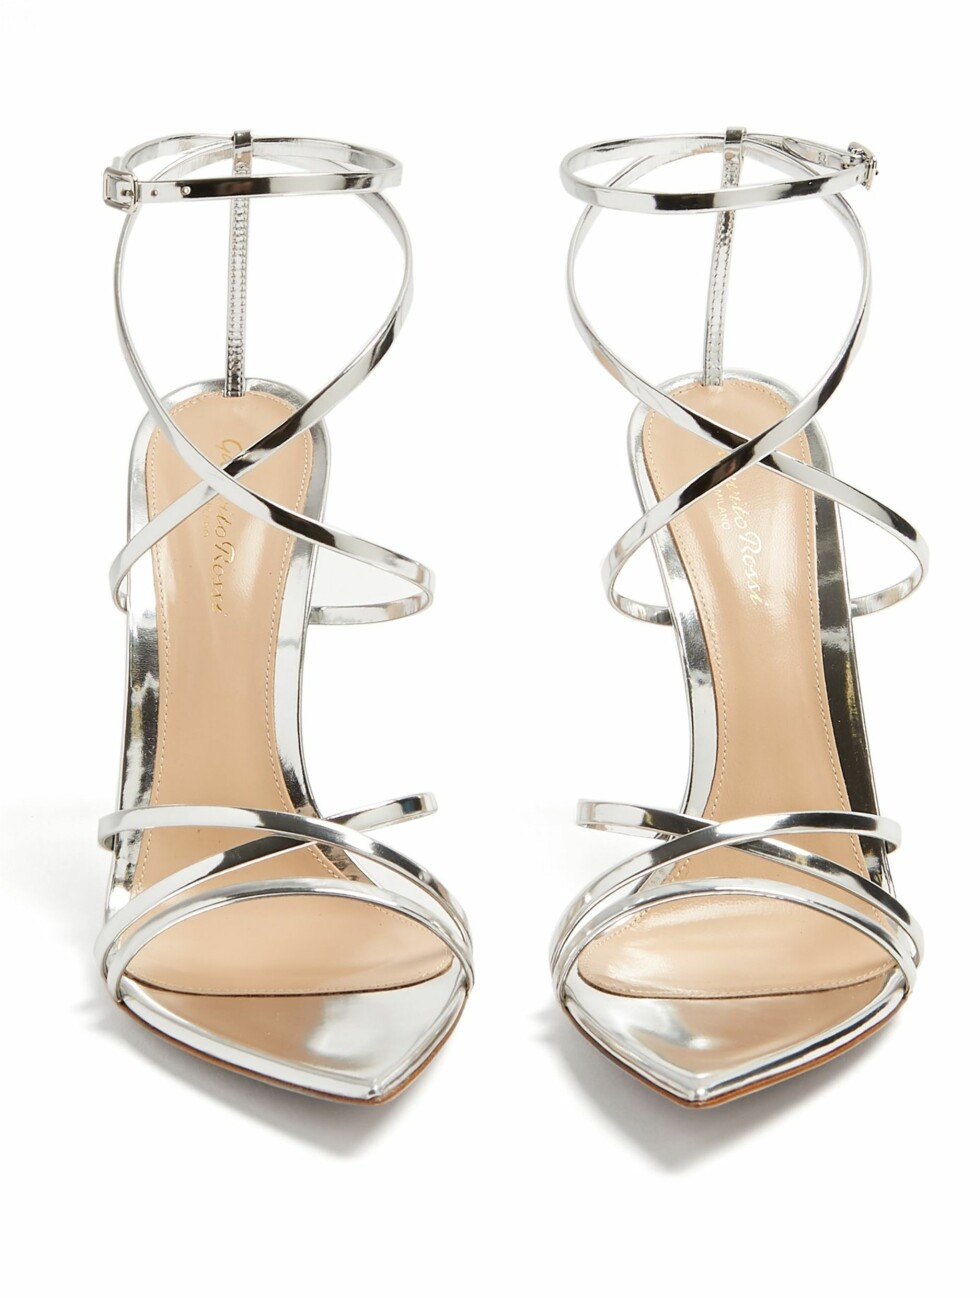 Sko fra Gianvito Rossi |3555,-| https://www.matchesfashion.com/intl/products/Gianvito-Rossi-Kim-100-leather-sandals--1205269